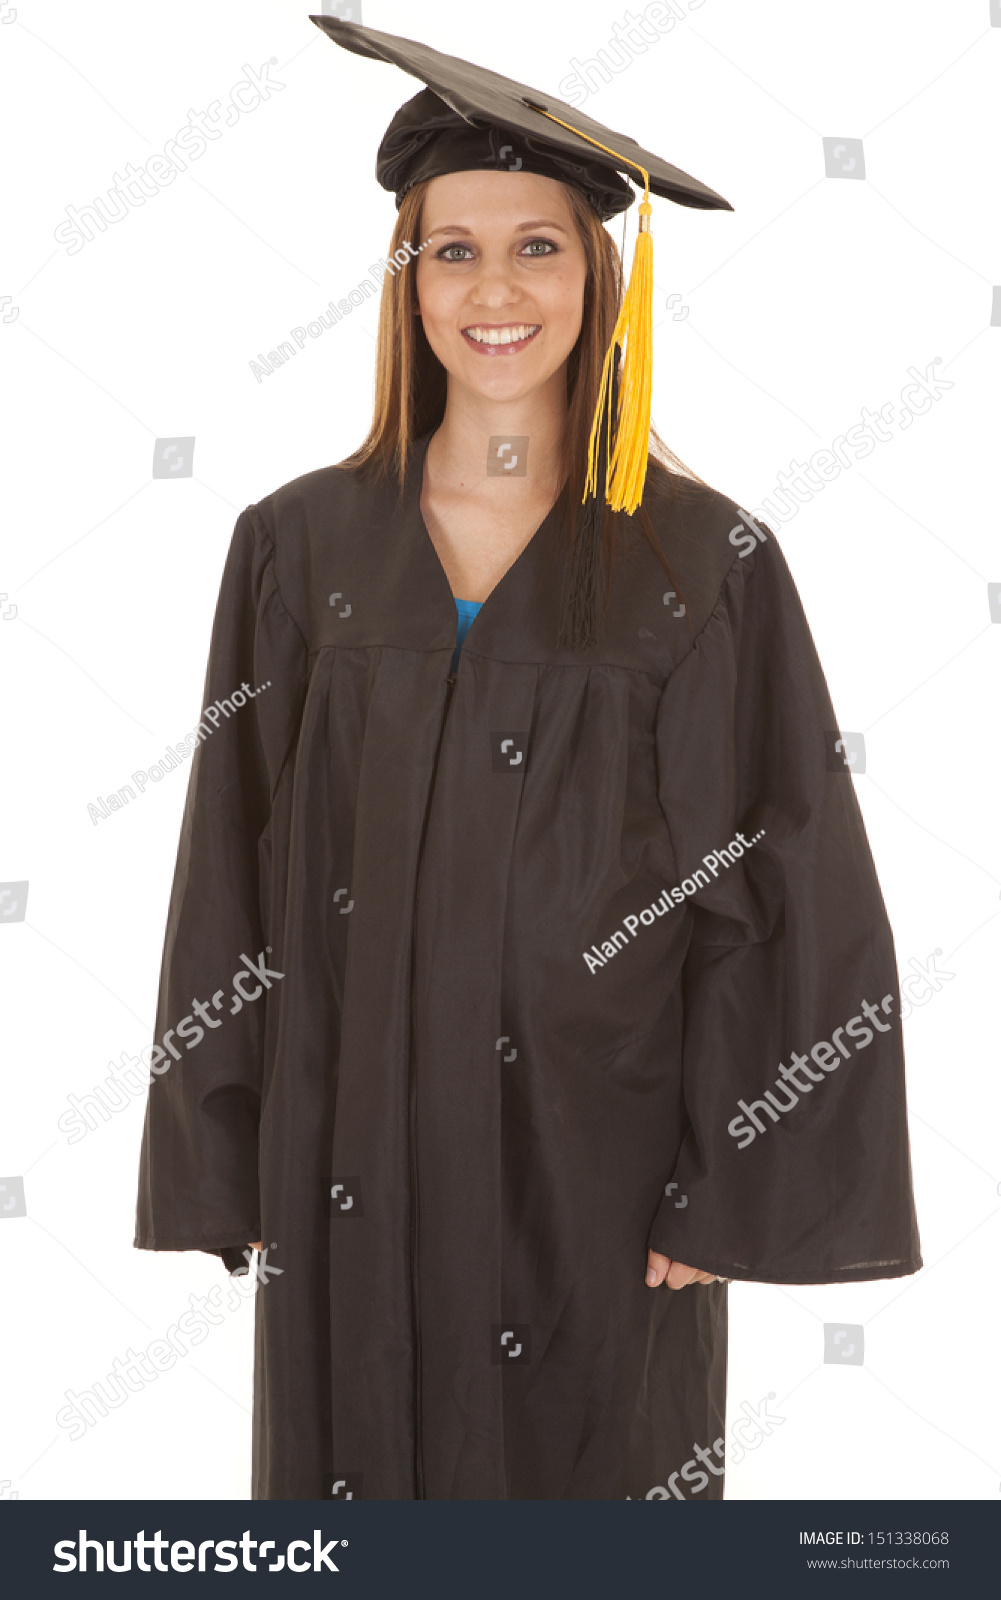 5eee1f88d9f Woman Standing Graduation Gown Smile Stock Photo (Edit Now ...